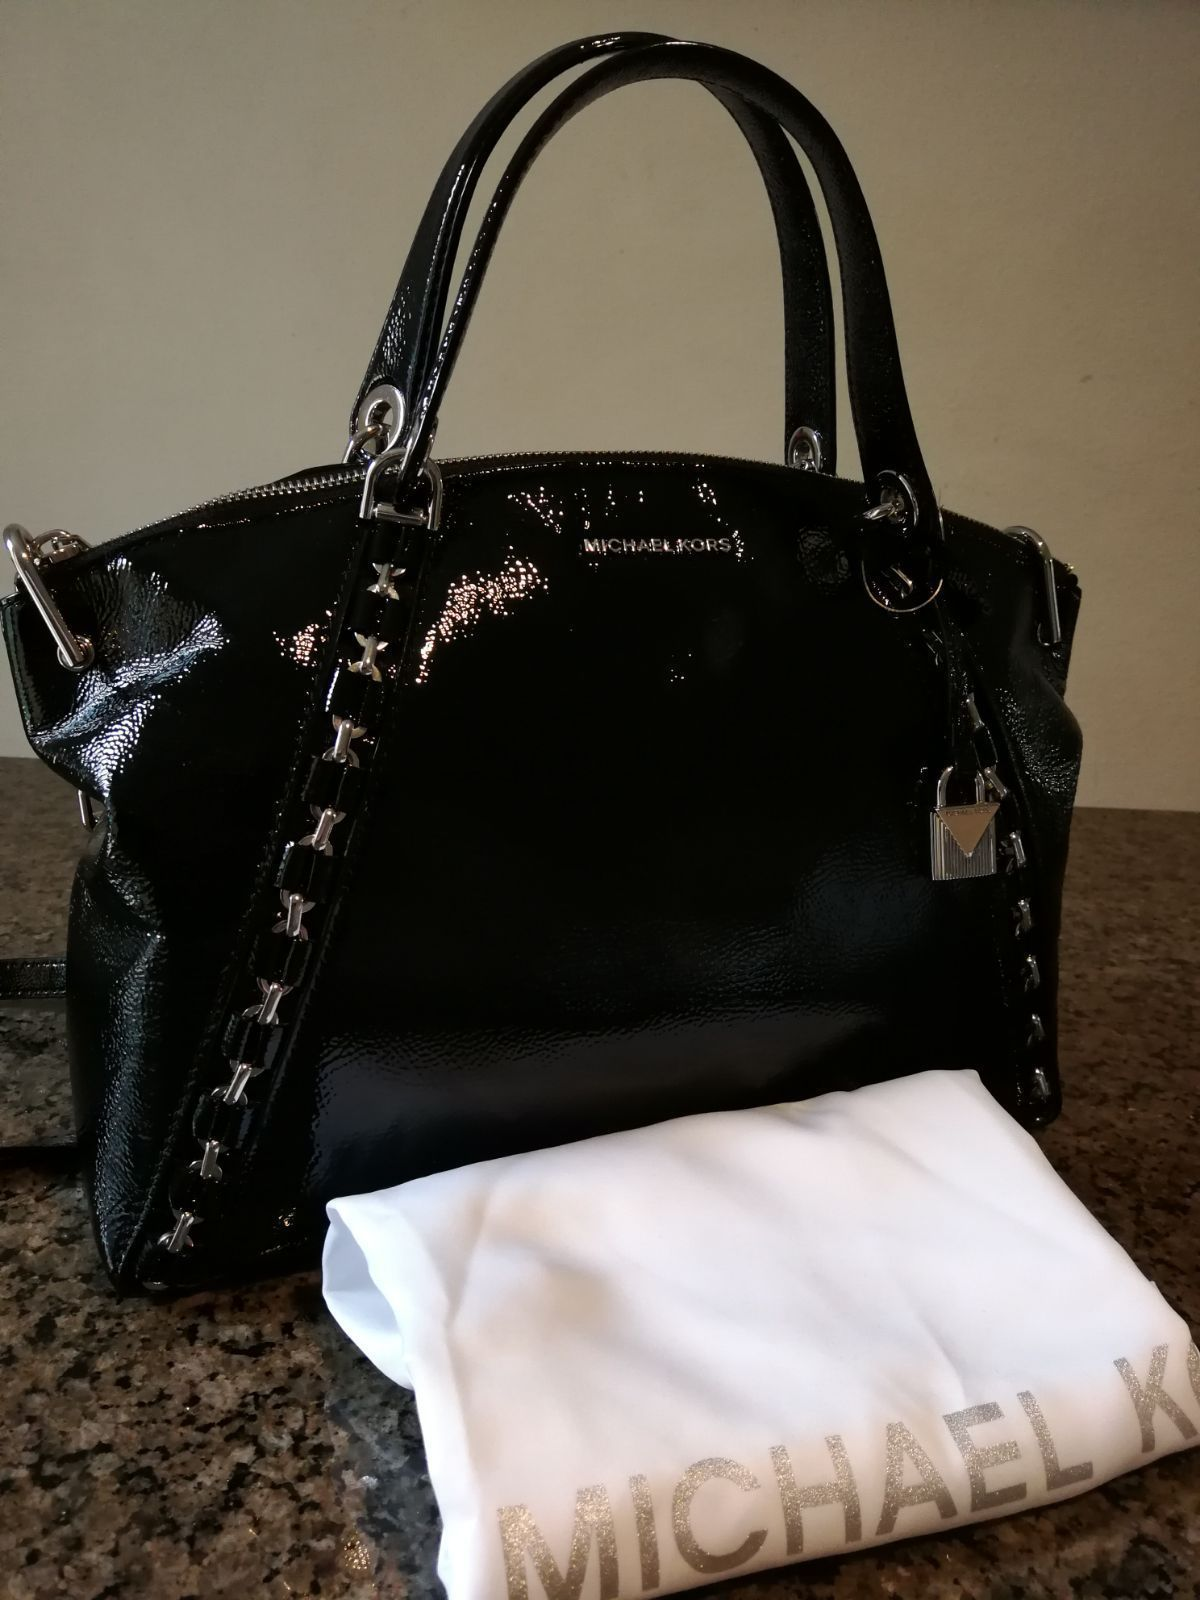 cfc7a2477a5f39 NWT Michael Kors Large Patent Leather Sadie Satchel Crossbody in Black $398